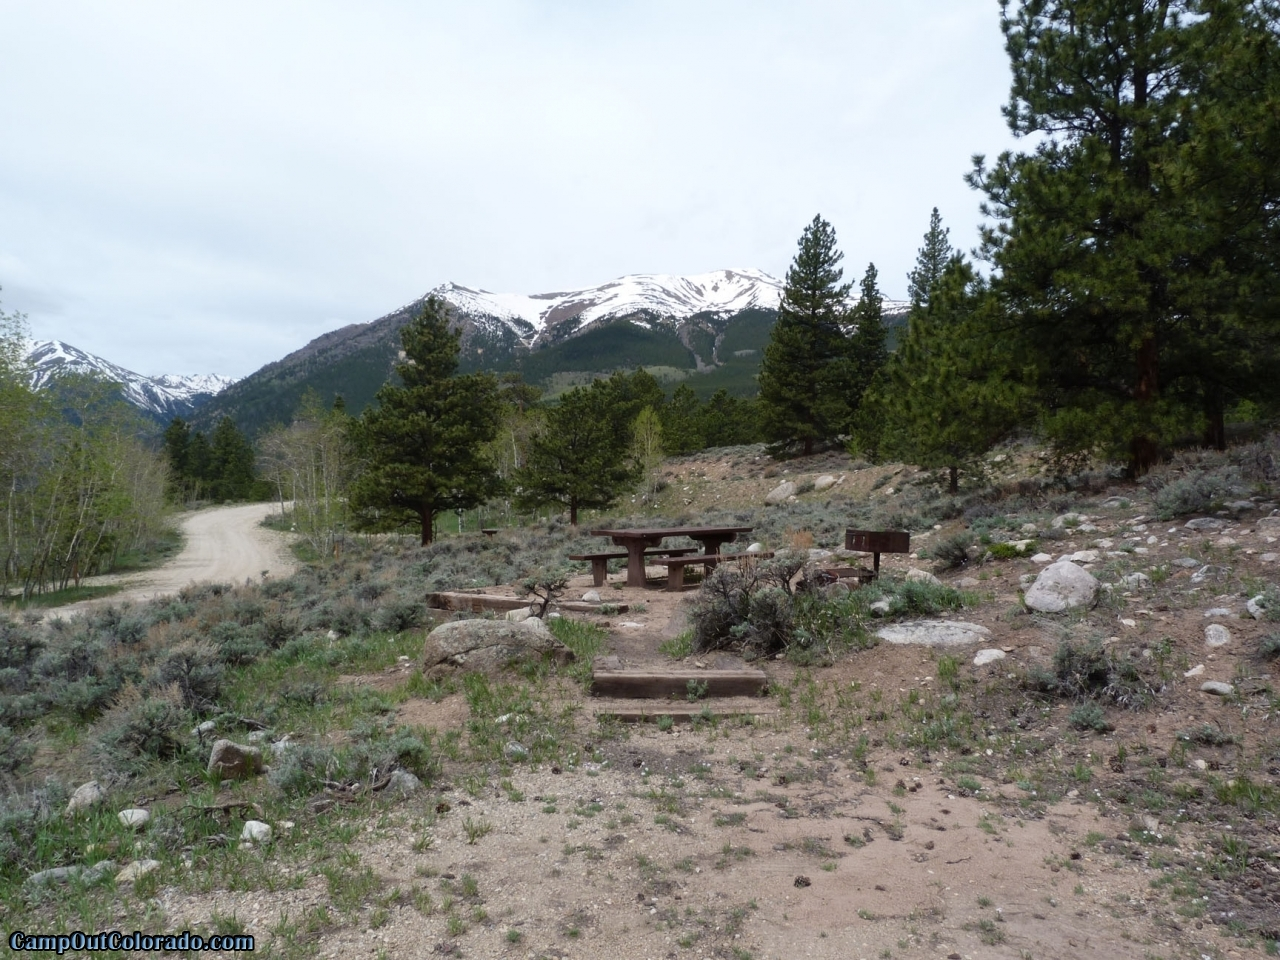 camp-out-colorado-lakeview-campground-exposed-campsite